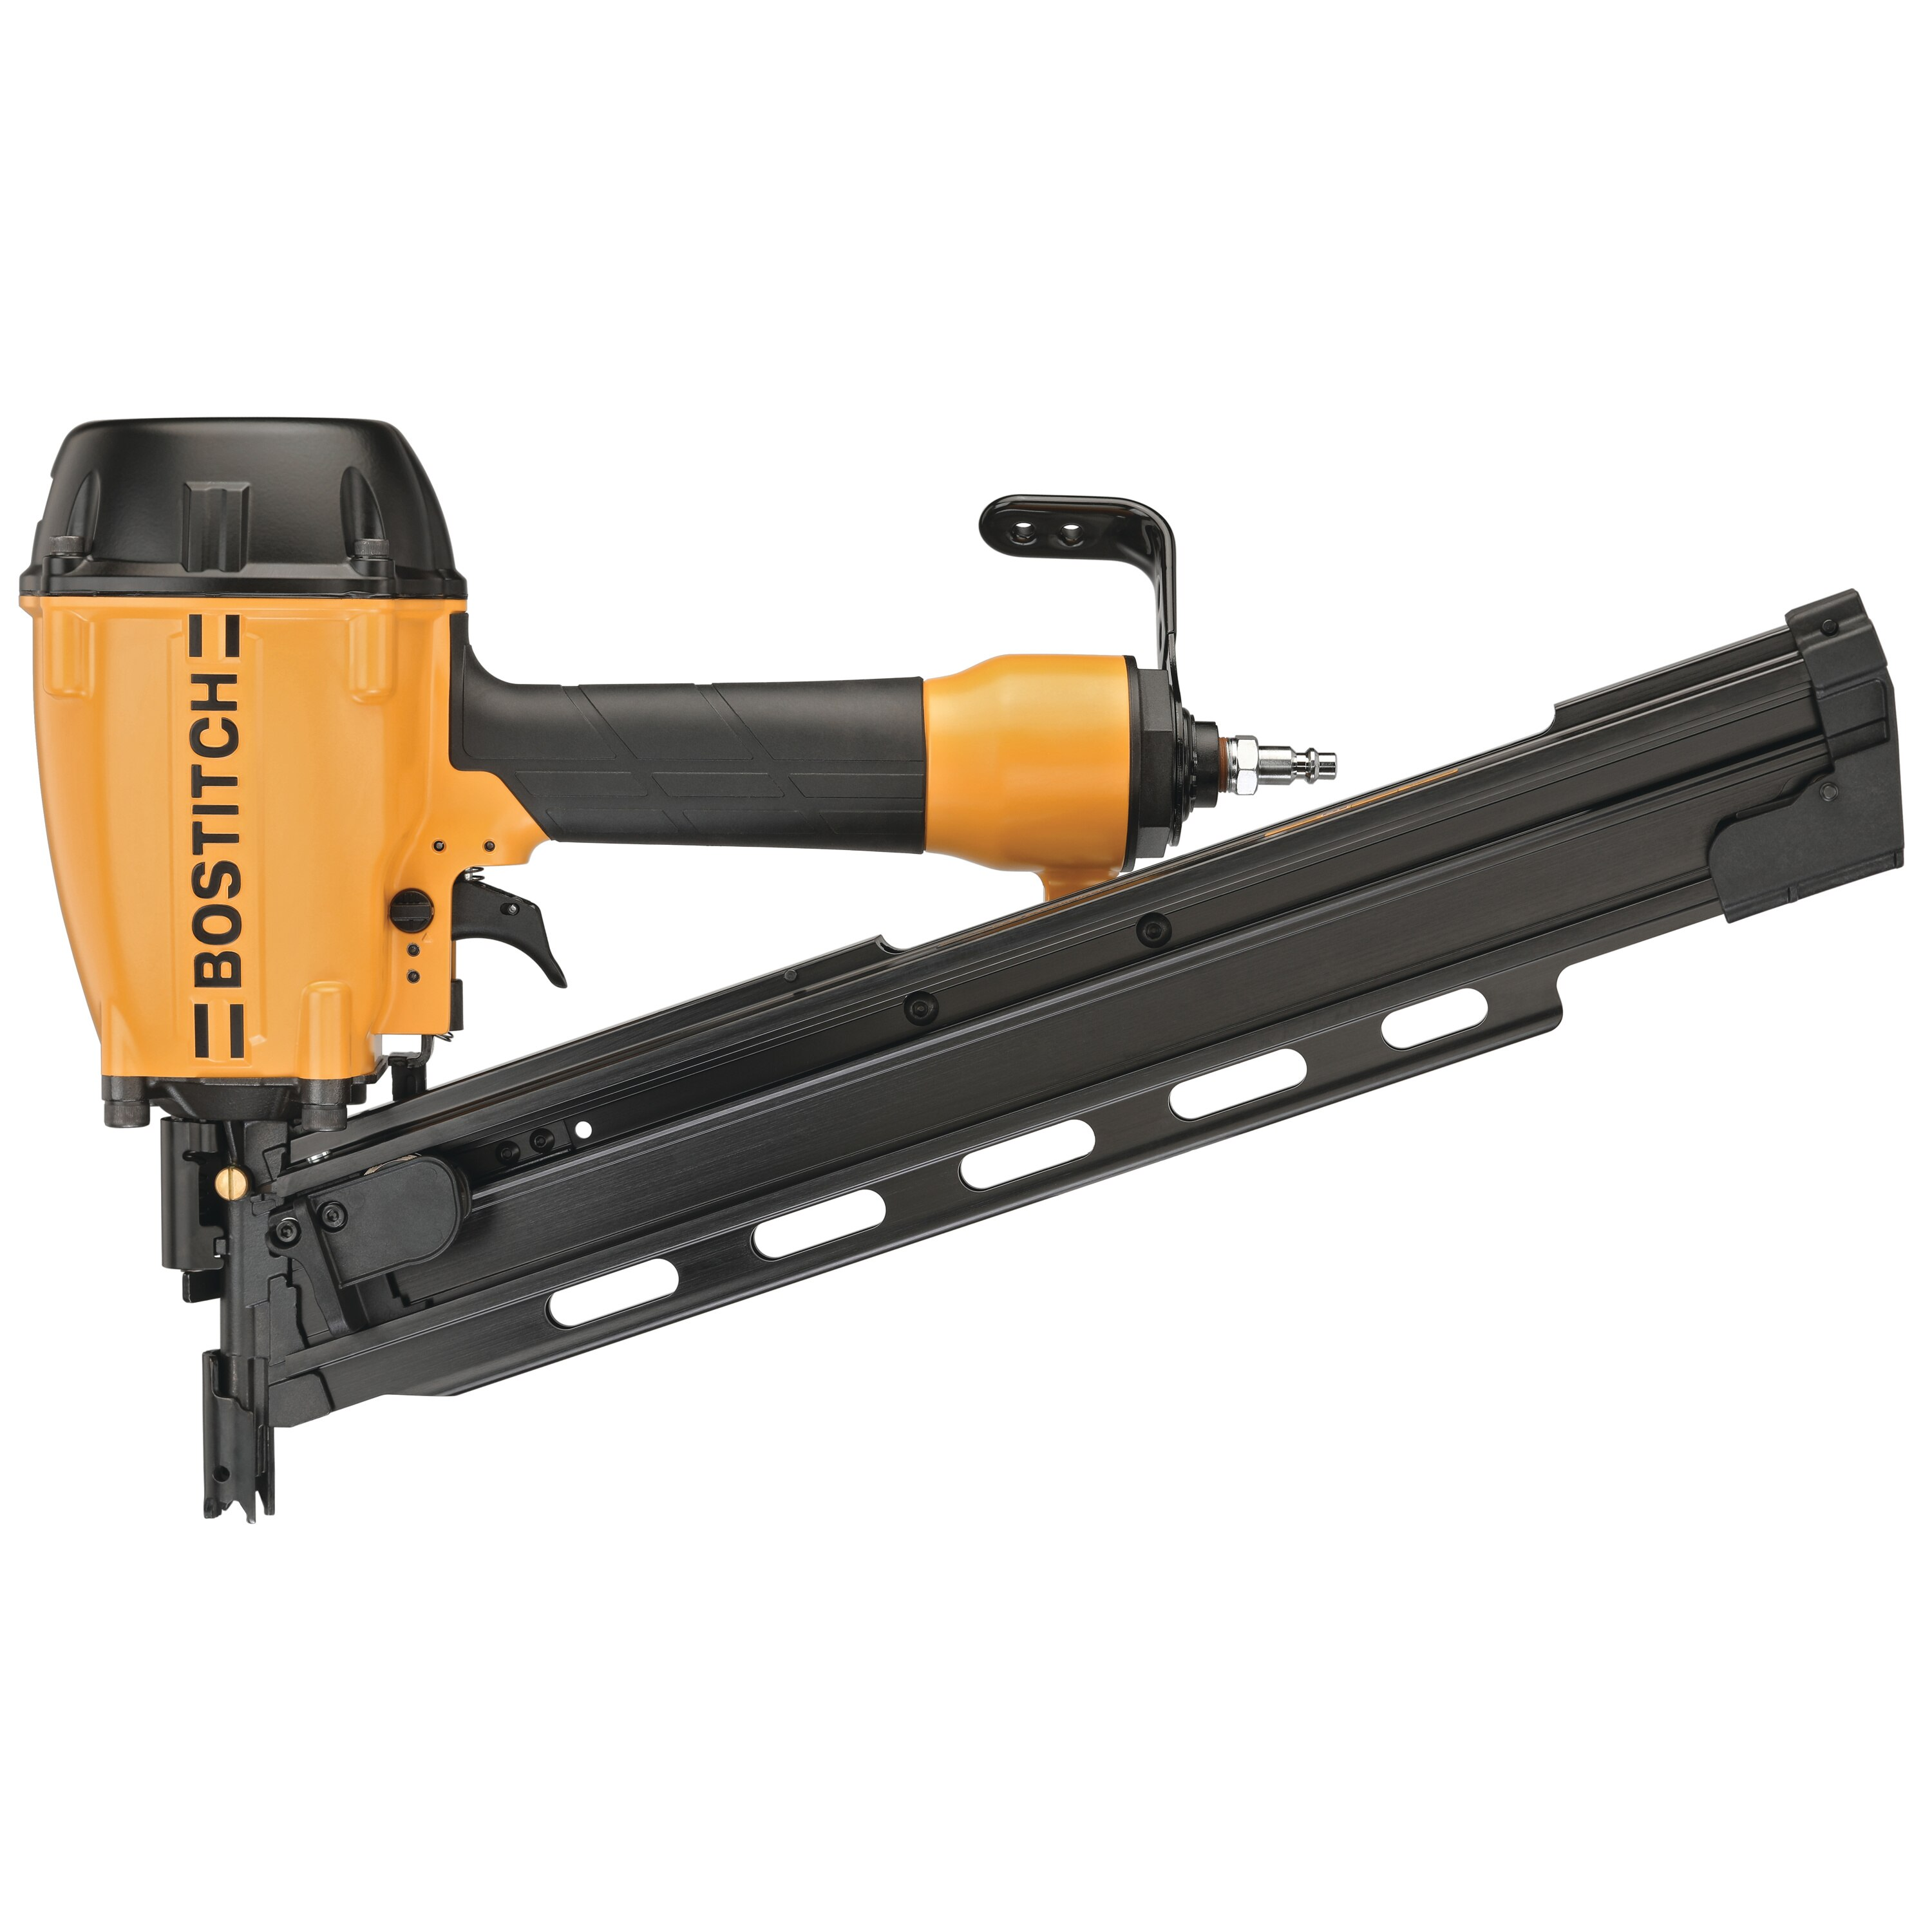 Bostitch - 21 Plastic Round Head Framing Nailer - BTF83PL